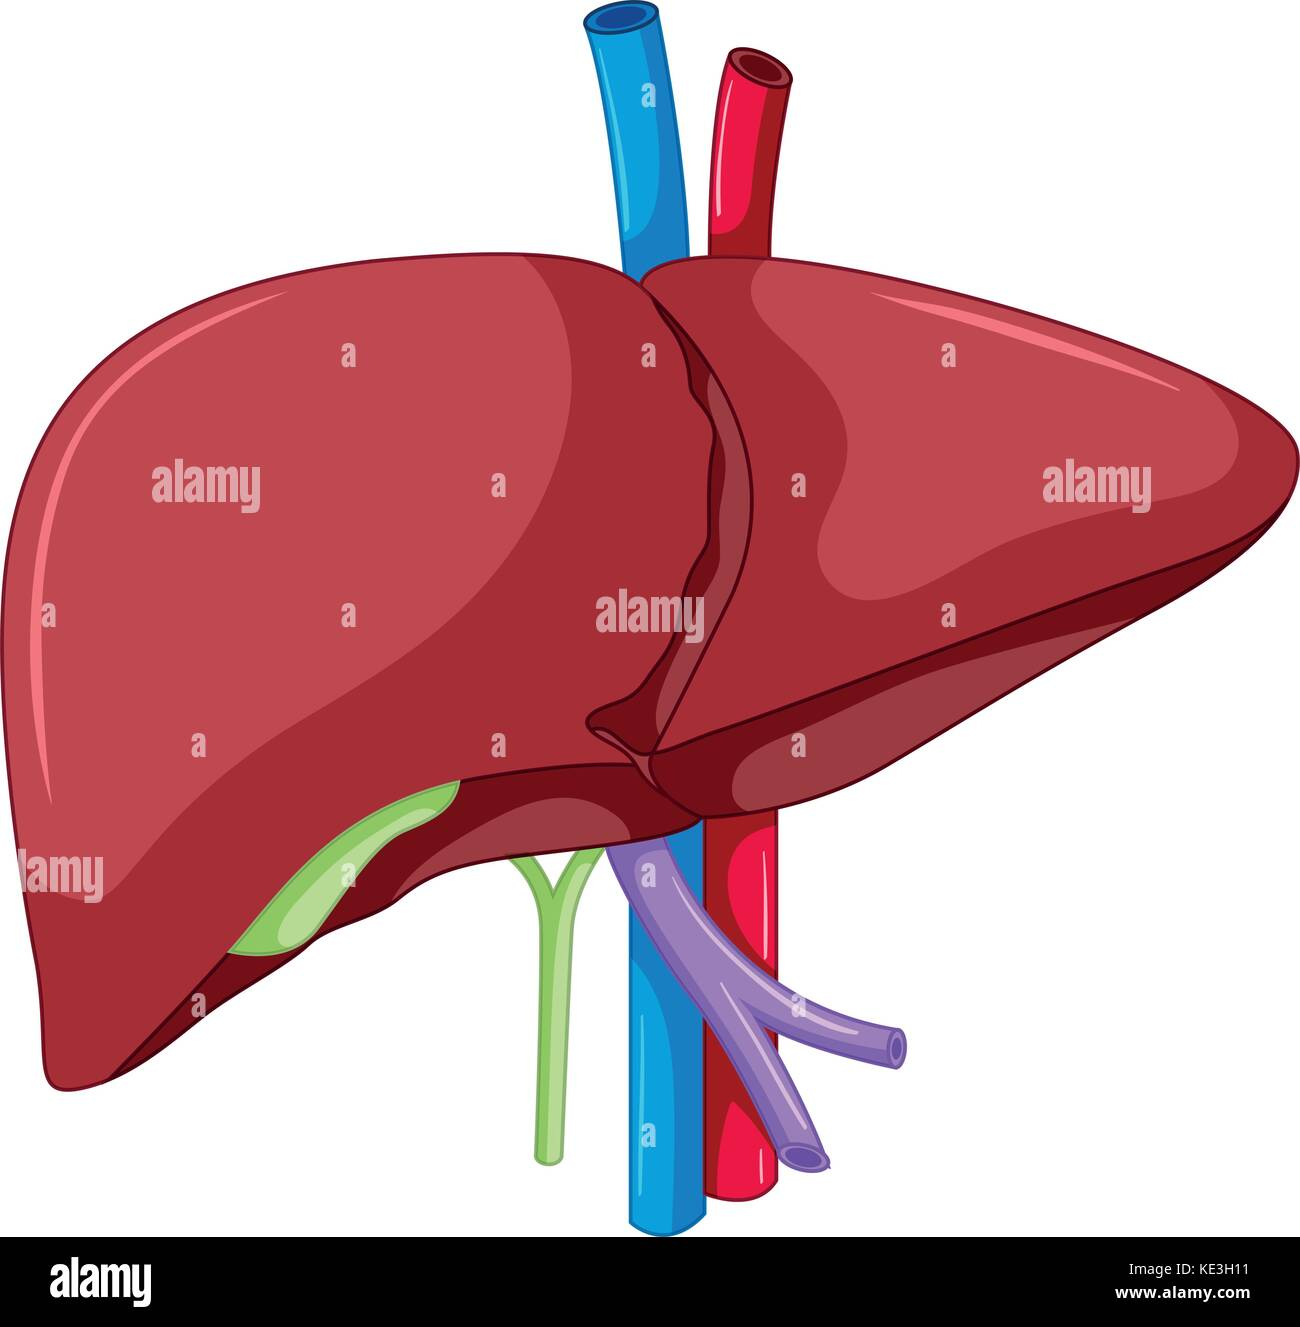 Liver anatomy of human body illustration Stock Vector Art ...